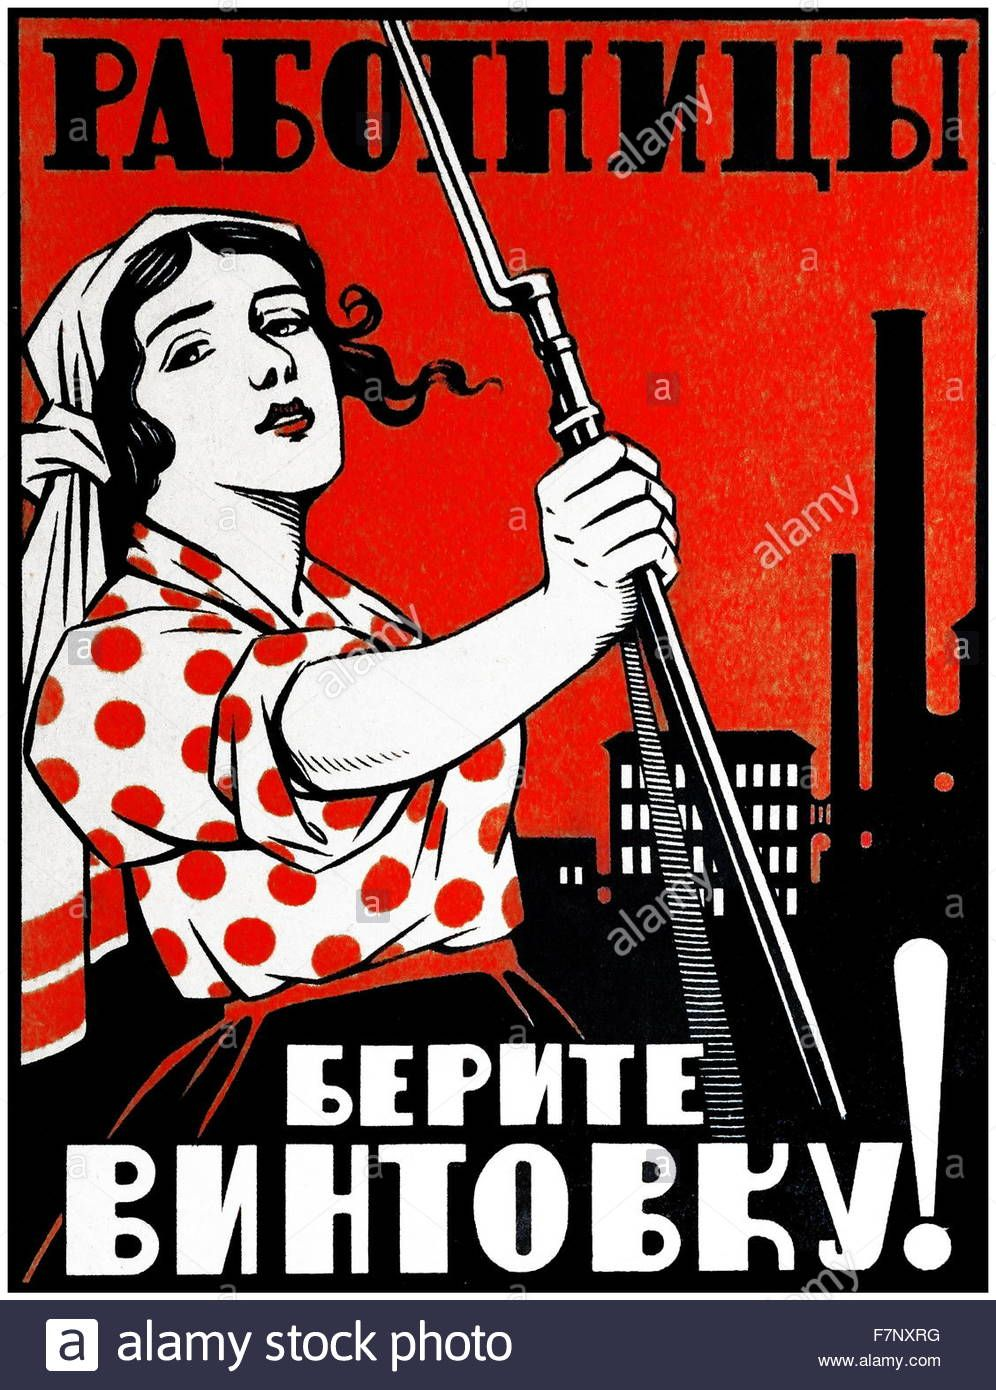 Russian Soviet Communist Propaganda Poster Ukrainians And Russians Have Common Call No Master Ov Communist Propaganda Revolution Poster Propaganda Posters